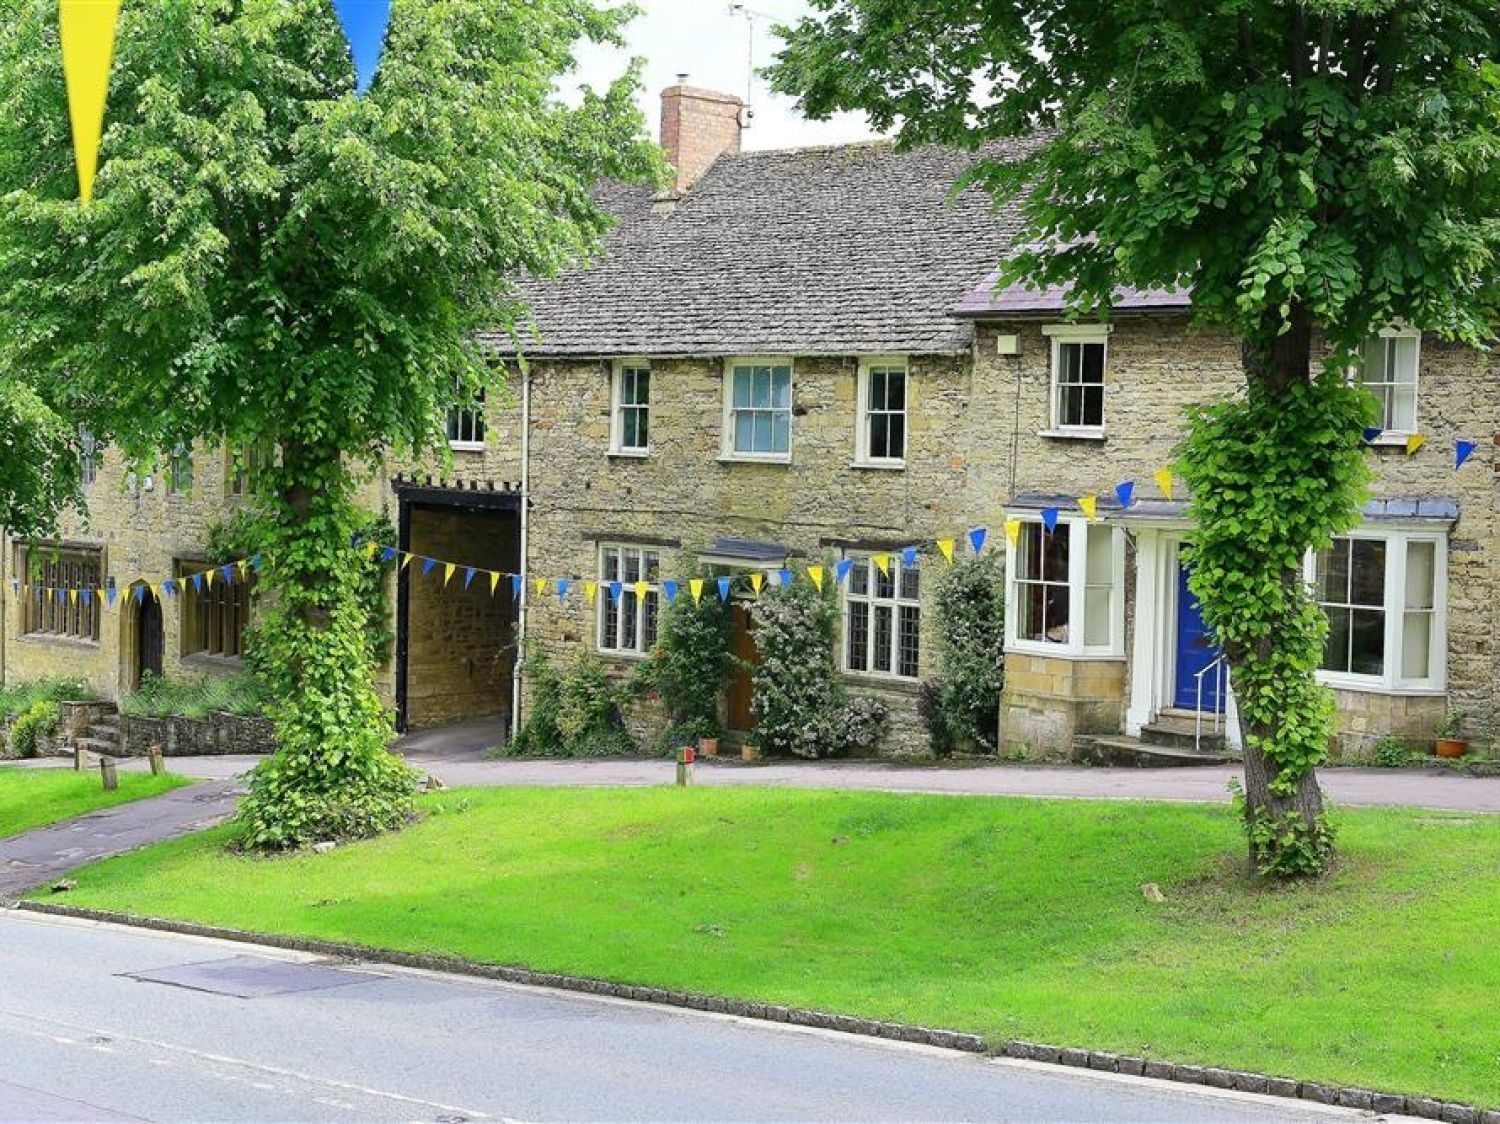 141 The Hill, Burford - Cotswolds - 988734 - photo 1